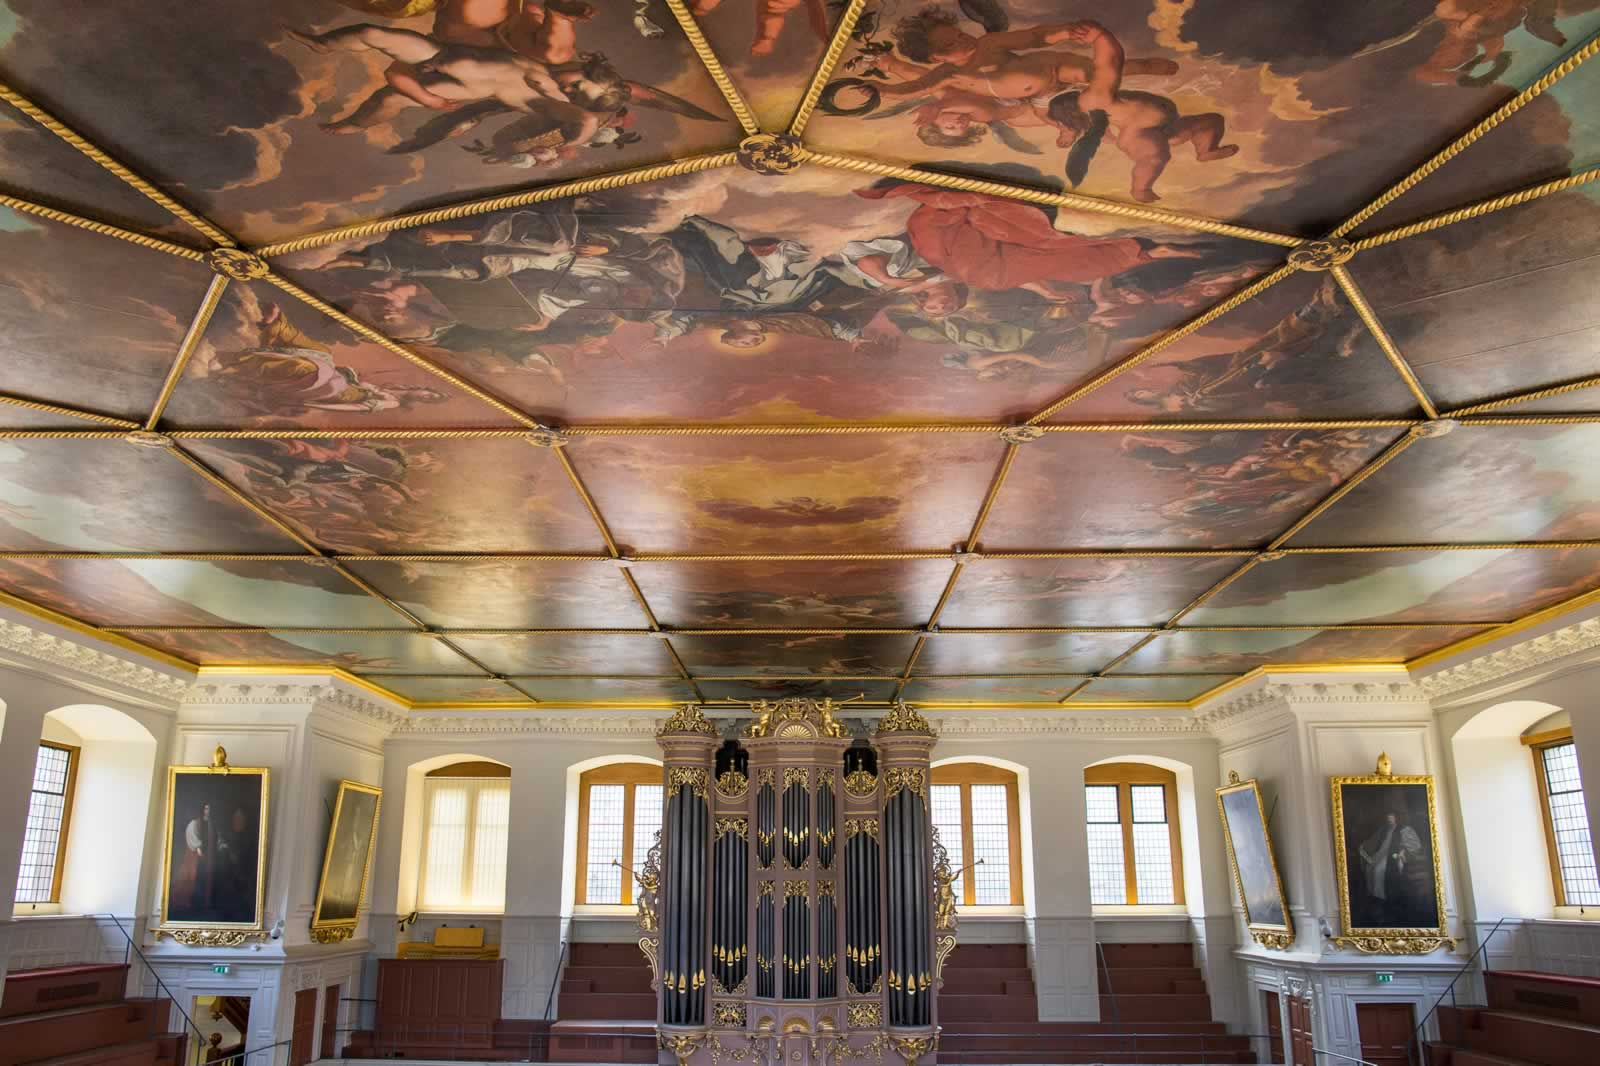 The fully restored ceiling of the Sheldonian Theatre